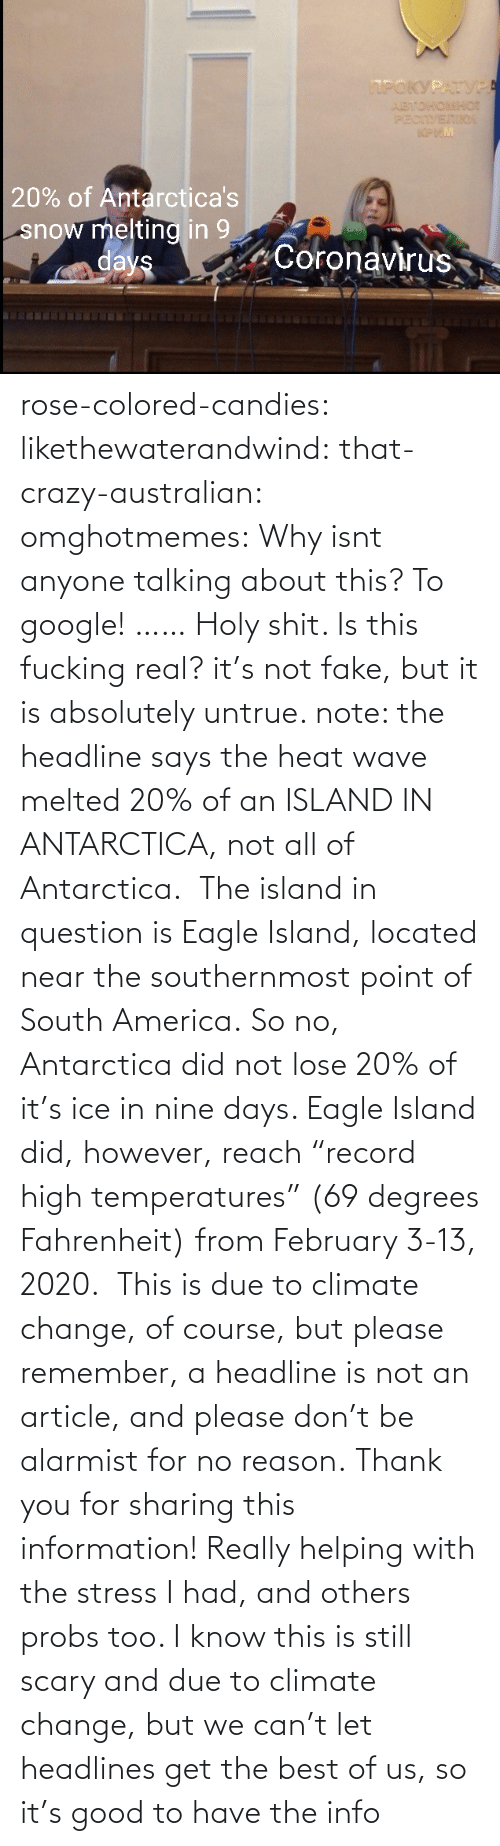 "Climate: rose-colored-candies: likethewaterandwind:   that-crazy-australian:  omghotmemes:  Why isnt anyone talking about this?   To google!  ……   Holy shit. Is this fucking real?   it's not fake, but it is absolutely untrue. note: the headline says the heat wave melted 20% of an ISLAND IN ANTARCTICA, not all of Antarctica.  The island in question is Eagle Island, located near the southernmost point of South America. So no, Antarctica did not lose 20% of it's ice in nine days. Eagle Island did, however, reach ""record high temperatures"" (69 degrees Fahrenheit) from February 3-13, 2020.  This is due to climate change, of course, but please remember, a headline is not an article, and please don't be alarmist for no reason.    Thank you for sharing this information! Really helping with the stress I had, and others probs too. I know this is still scary and due to climate change, but we can't let headlines get the best of us, so it's good to have the info"